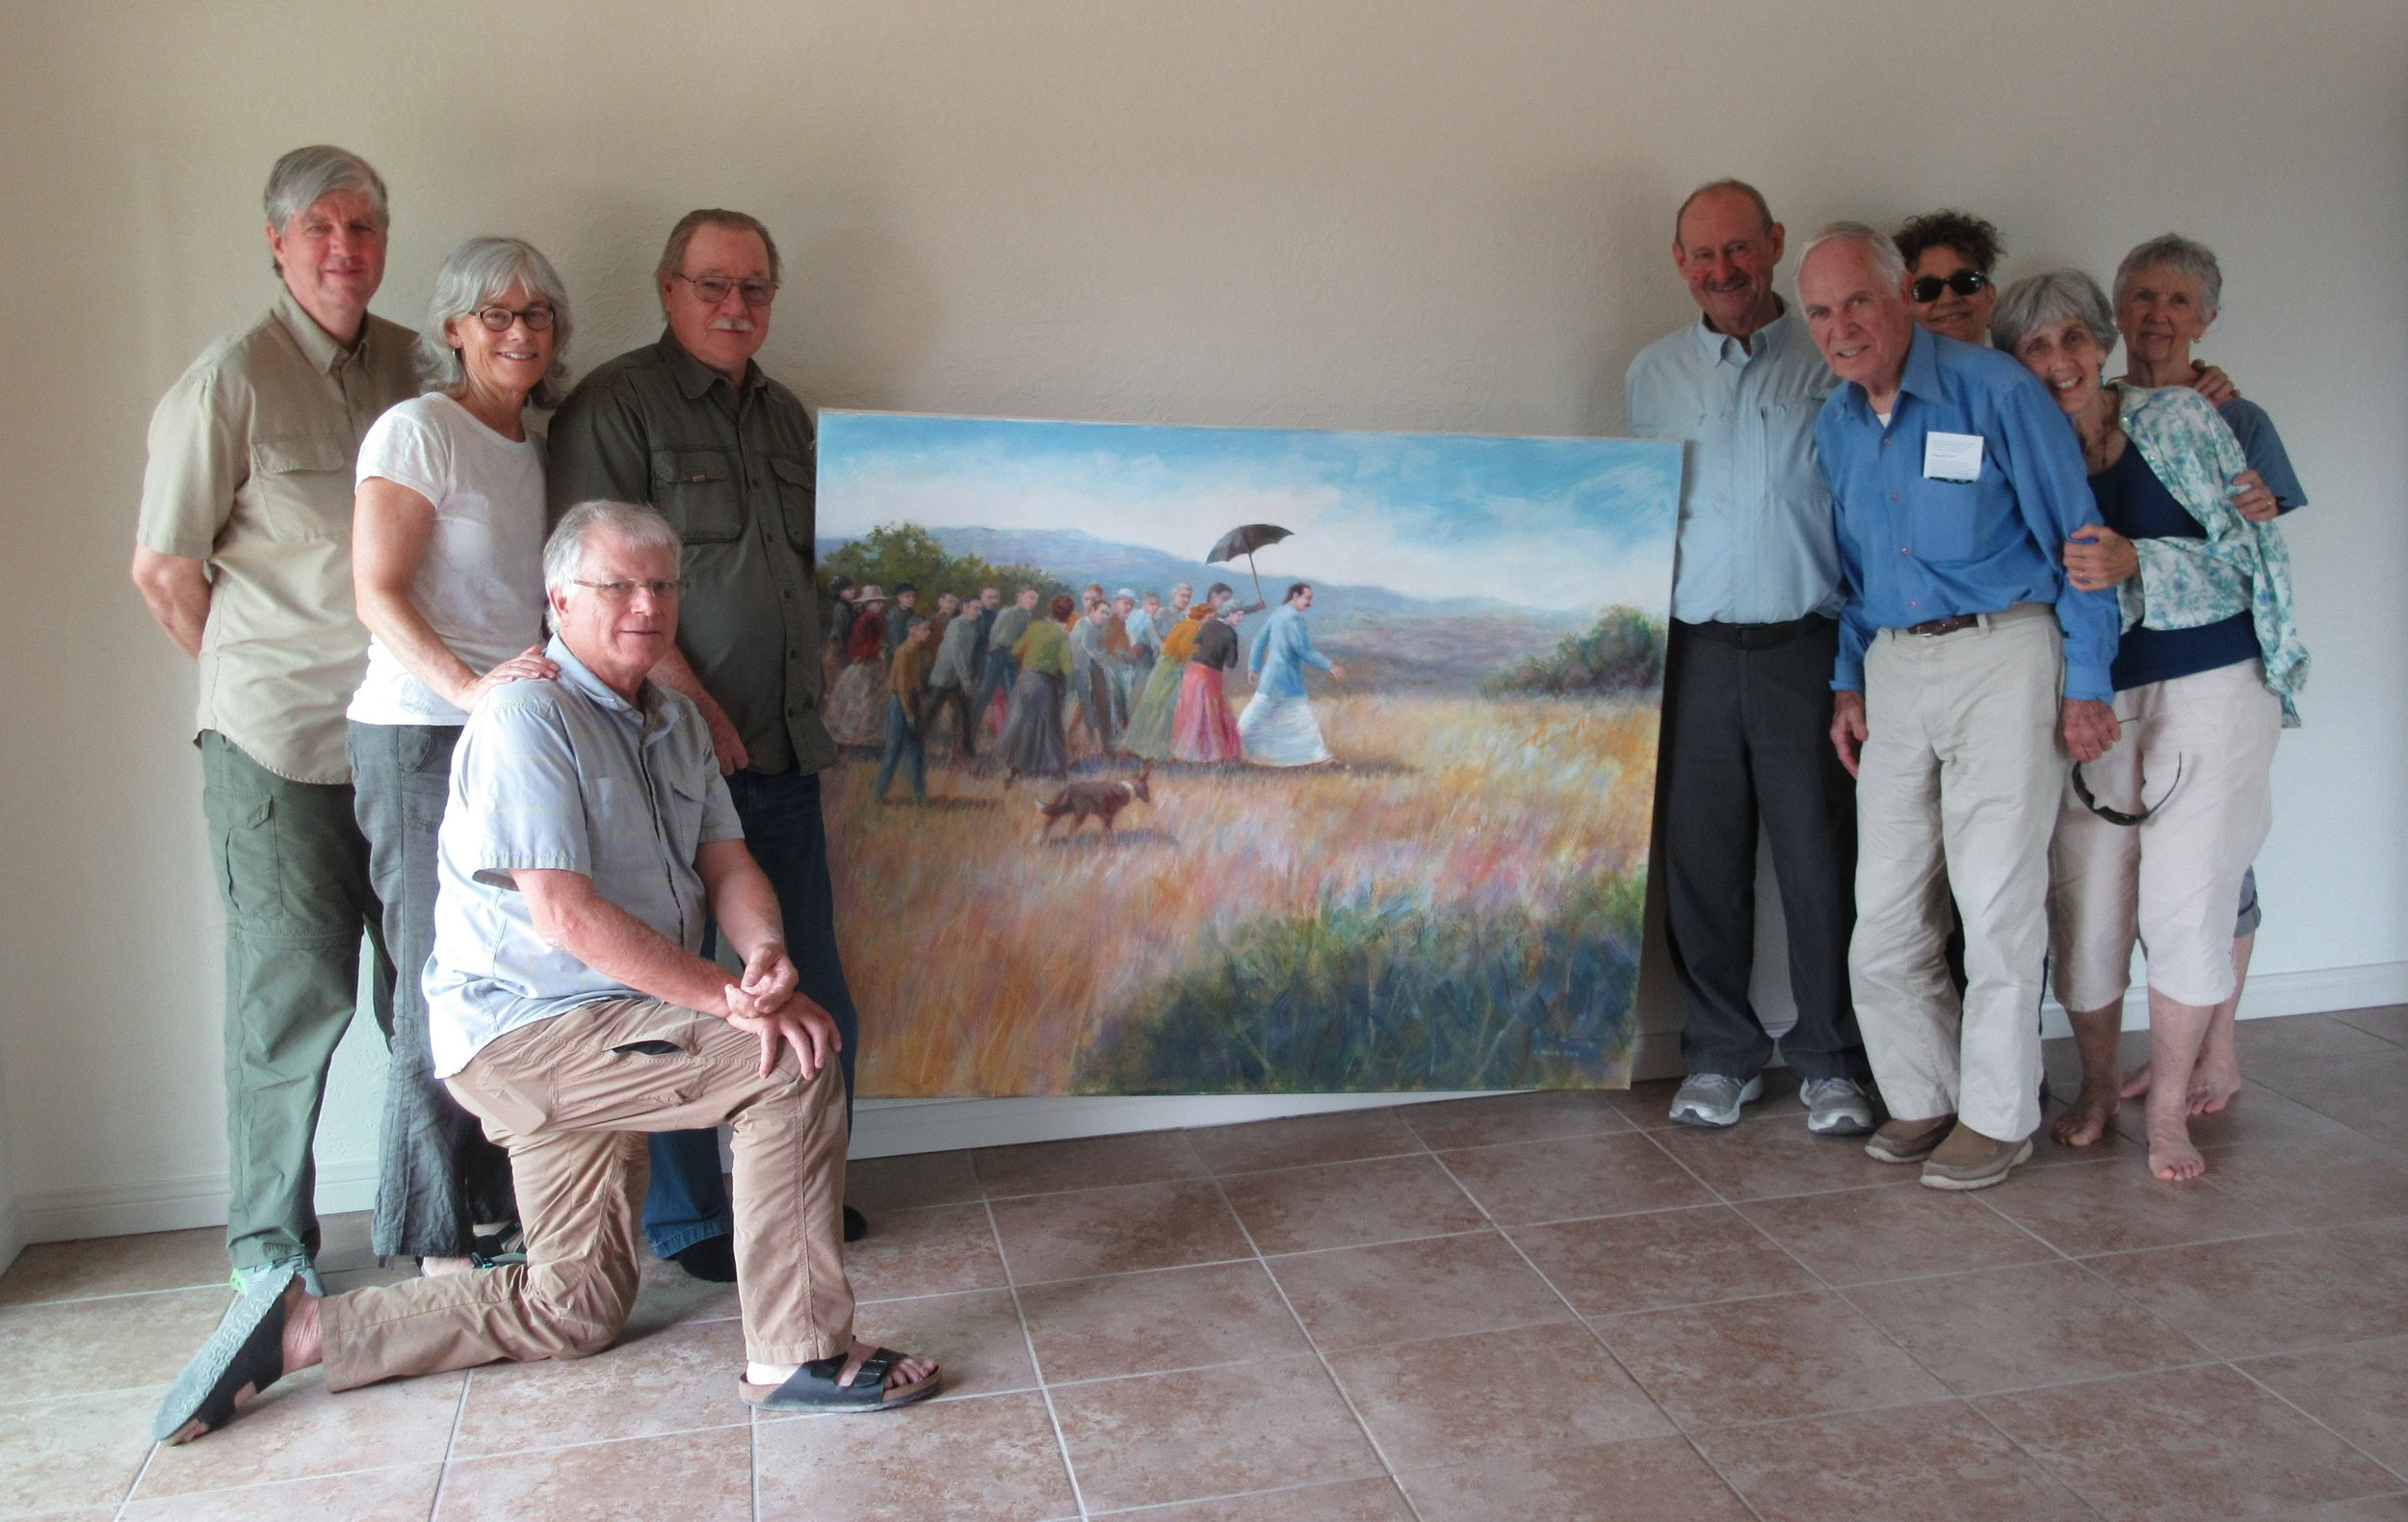 CELEBRATING THE ARRIVAL of Charles Mill's painting of Avatar Meher Baba and a special visit by Tom and Cathy Riley. (Left to right: Wayne Myers, Kristina Somma, Charles Mills, Robert Turnage (kneeling), Sam Ervin, Tom Riley, Marta Flores, Cathy Riley and Linda Mills. (Photo: Margaret Magnus, August 10, 2018)